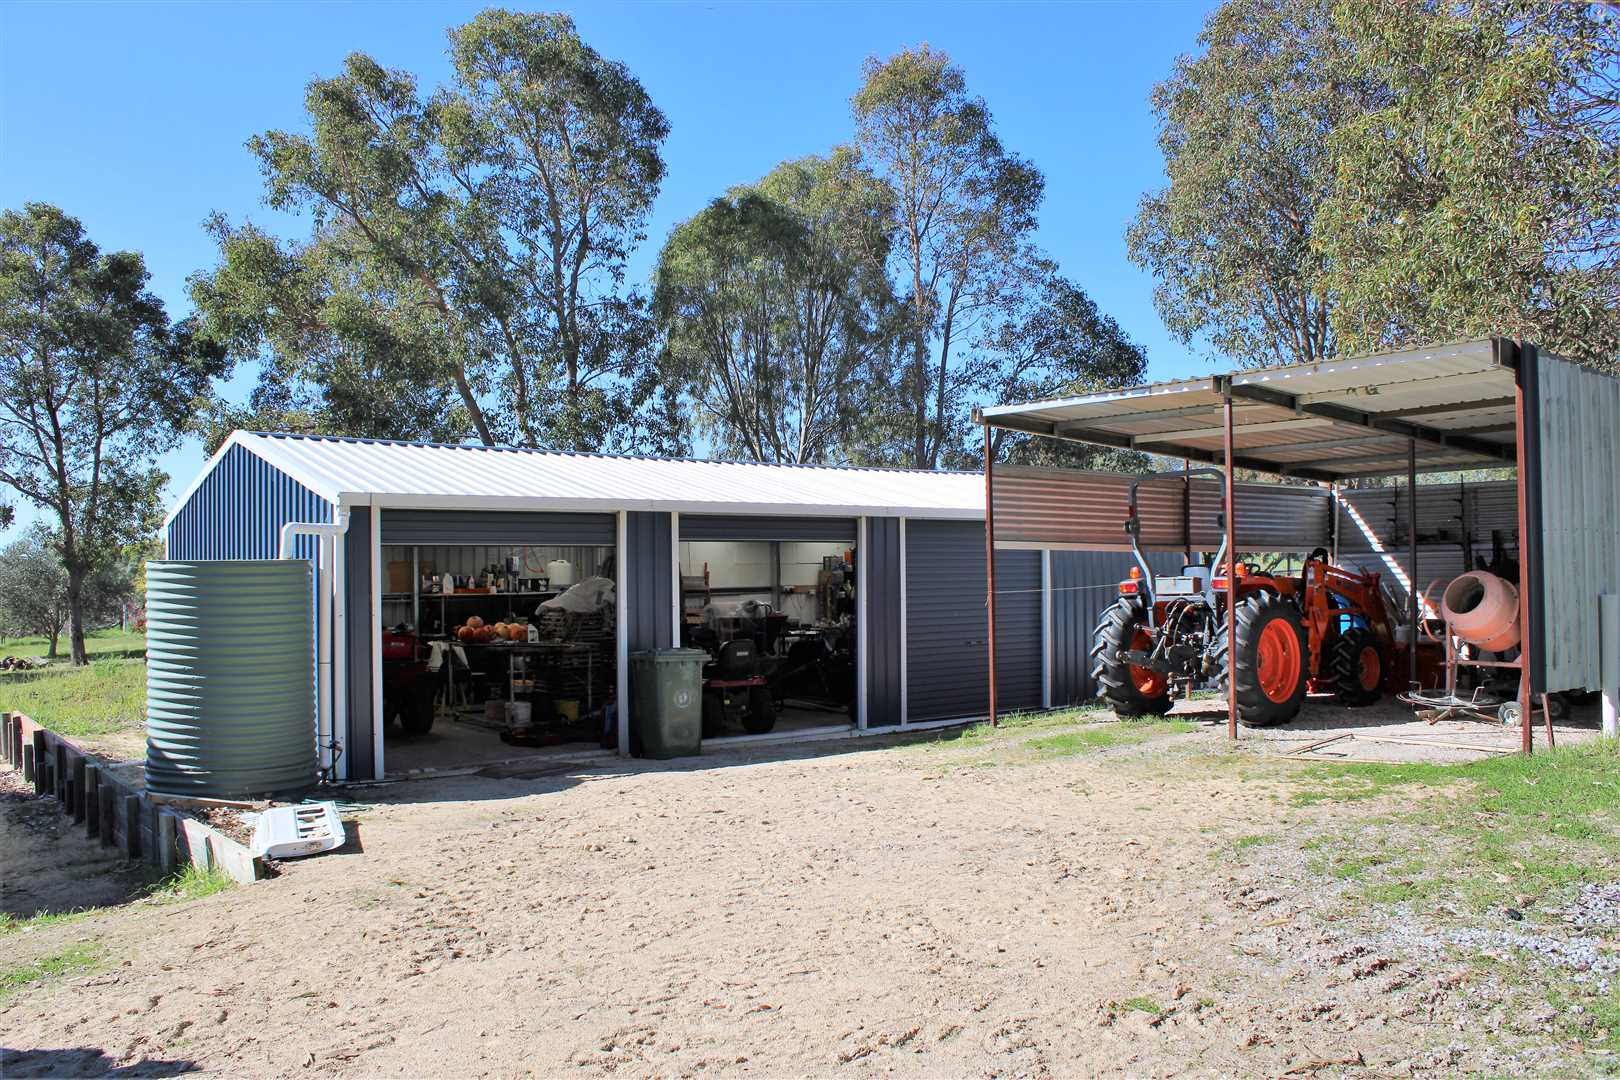 Enclosed shed 12m x 6m. Room to house three cars or farming implements with extra room under the lean-to.